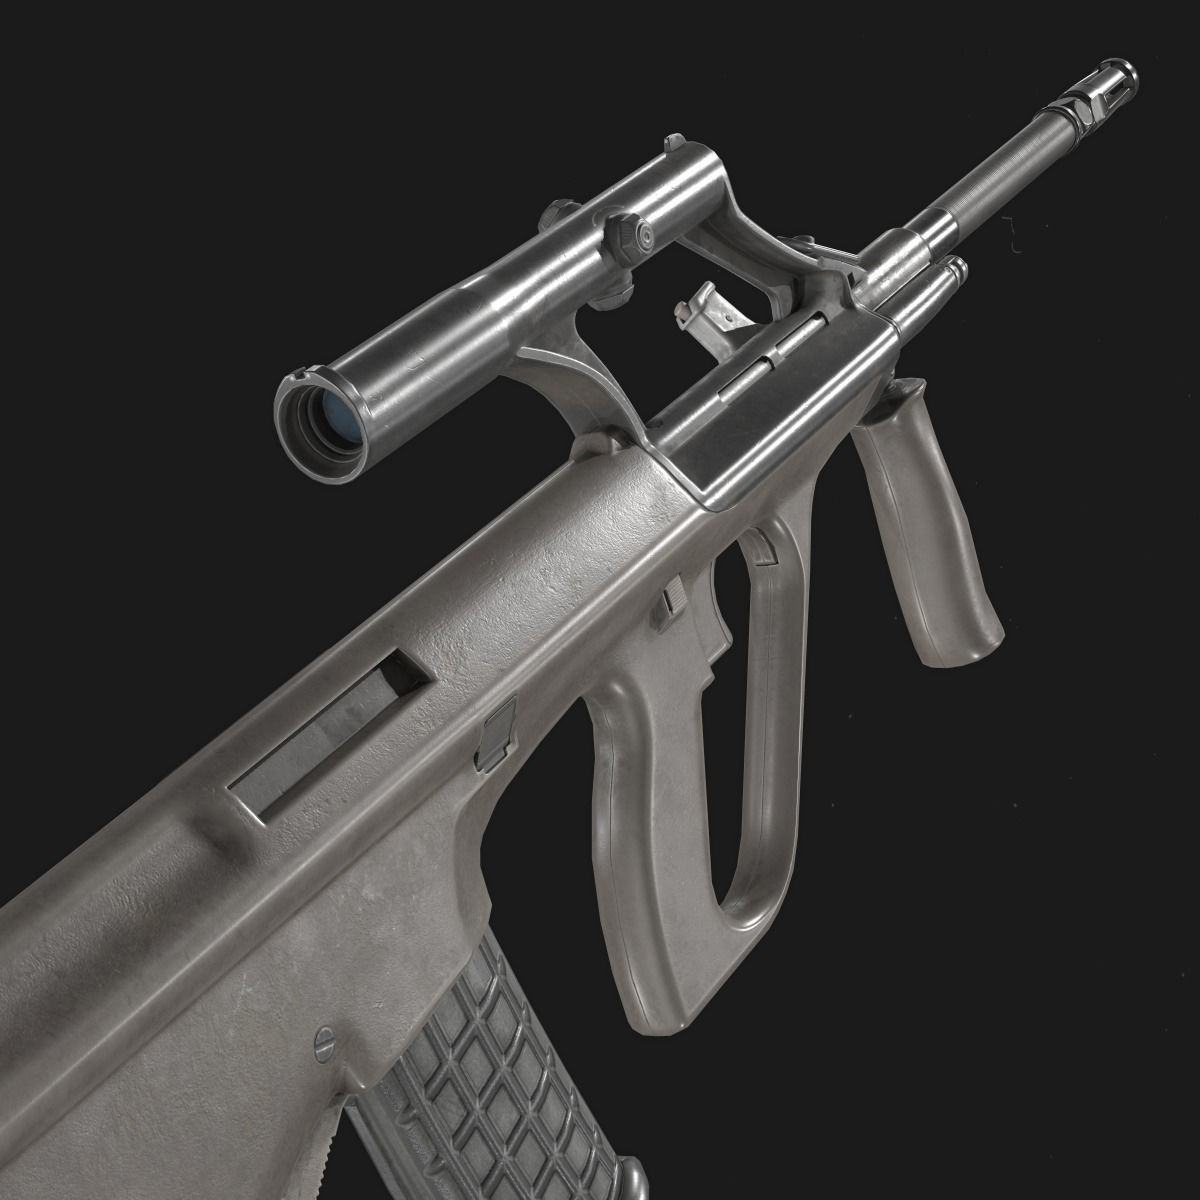 AUG A1 Assault Rifle